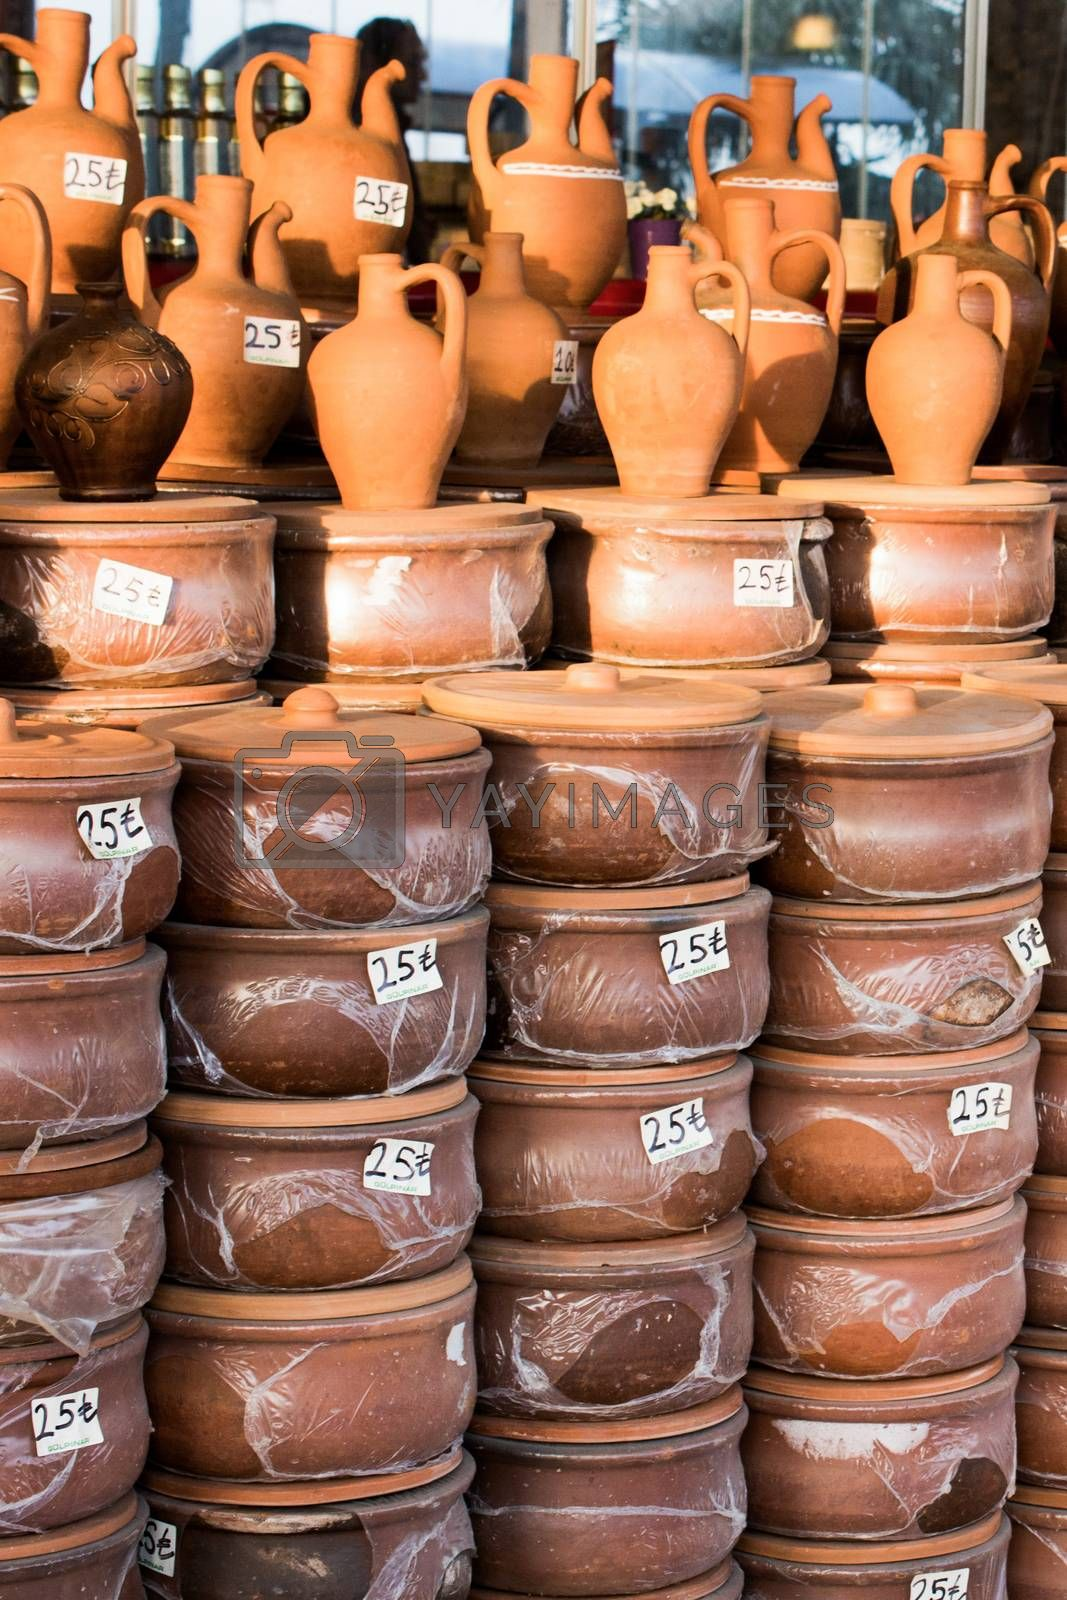 Harden clay pot showing for sale in a market